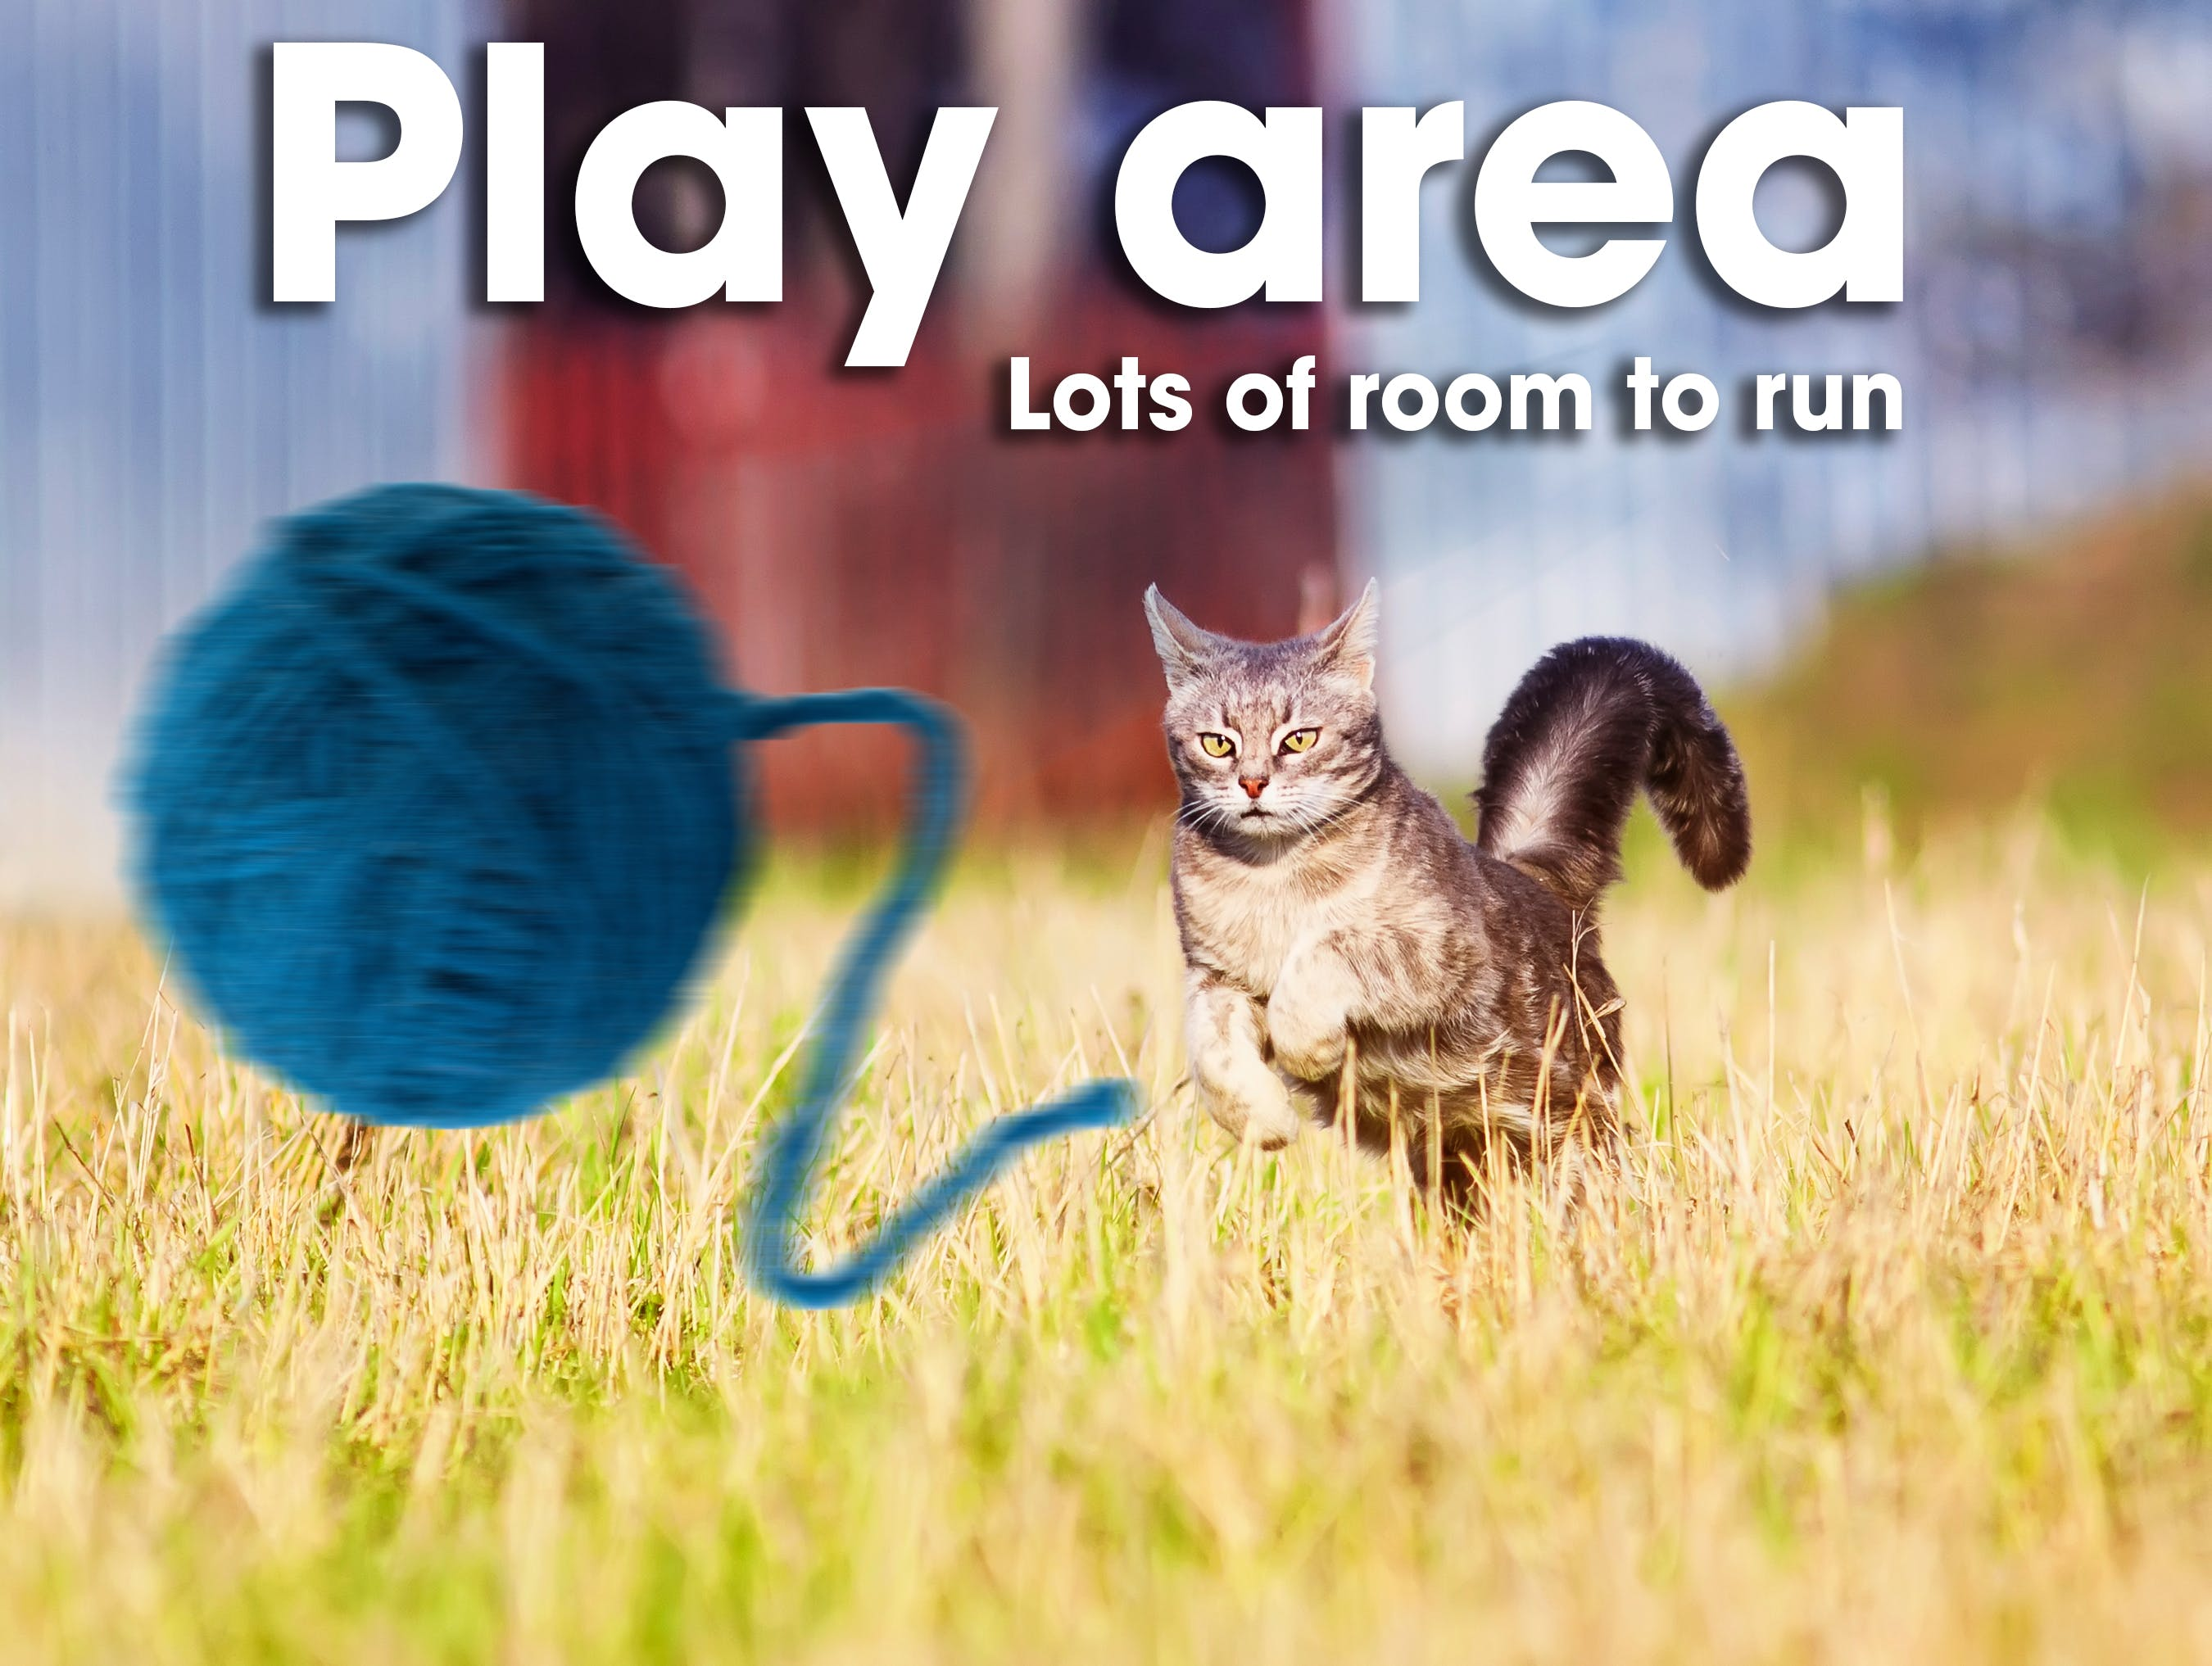 Play area with a lot of room to run